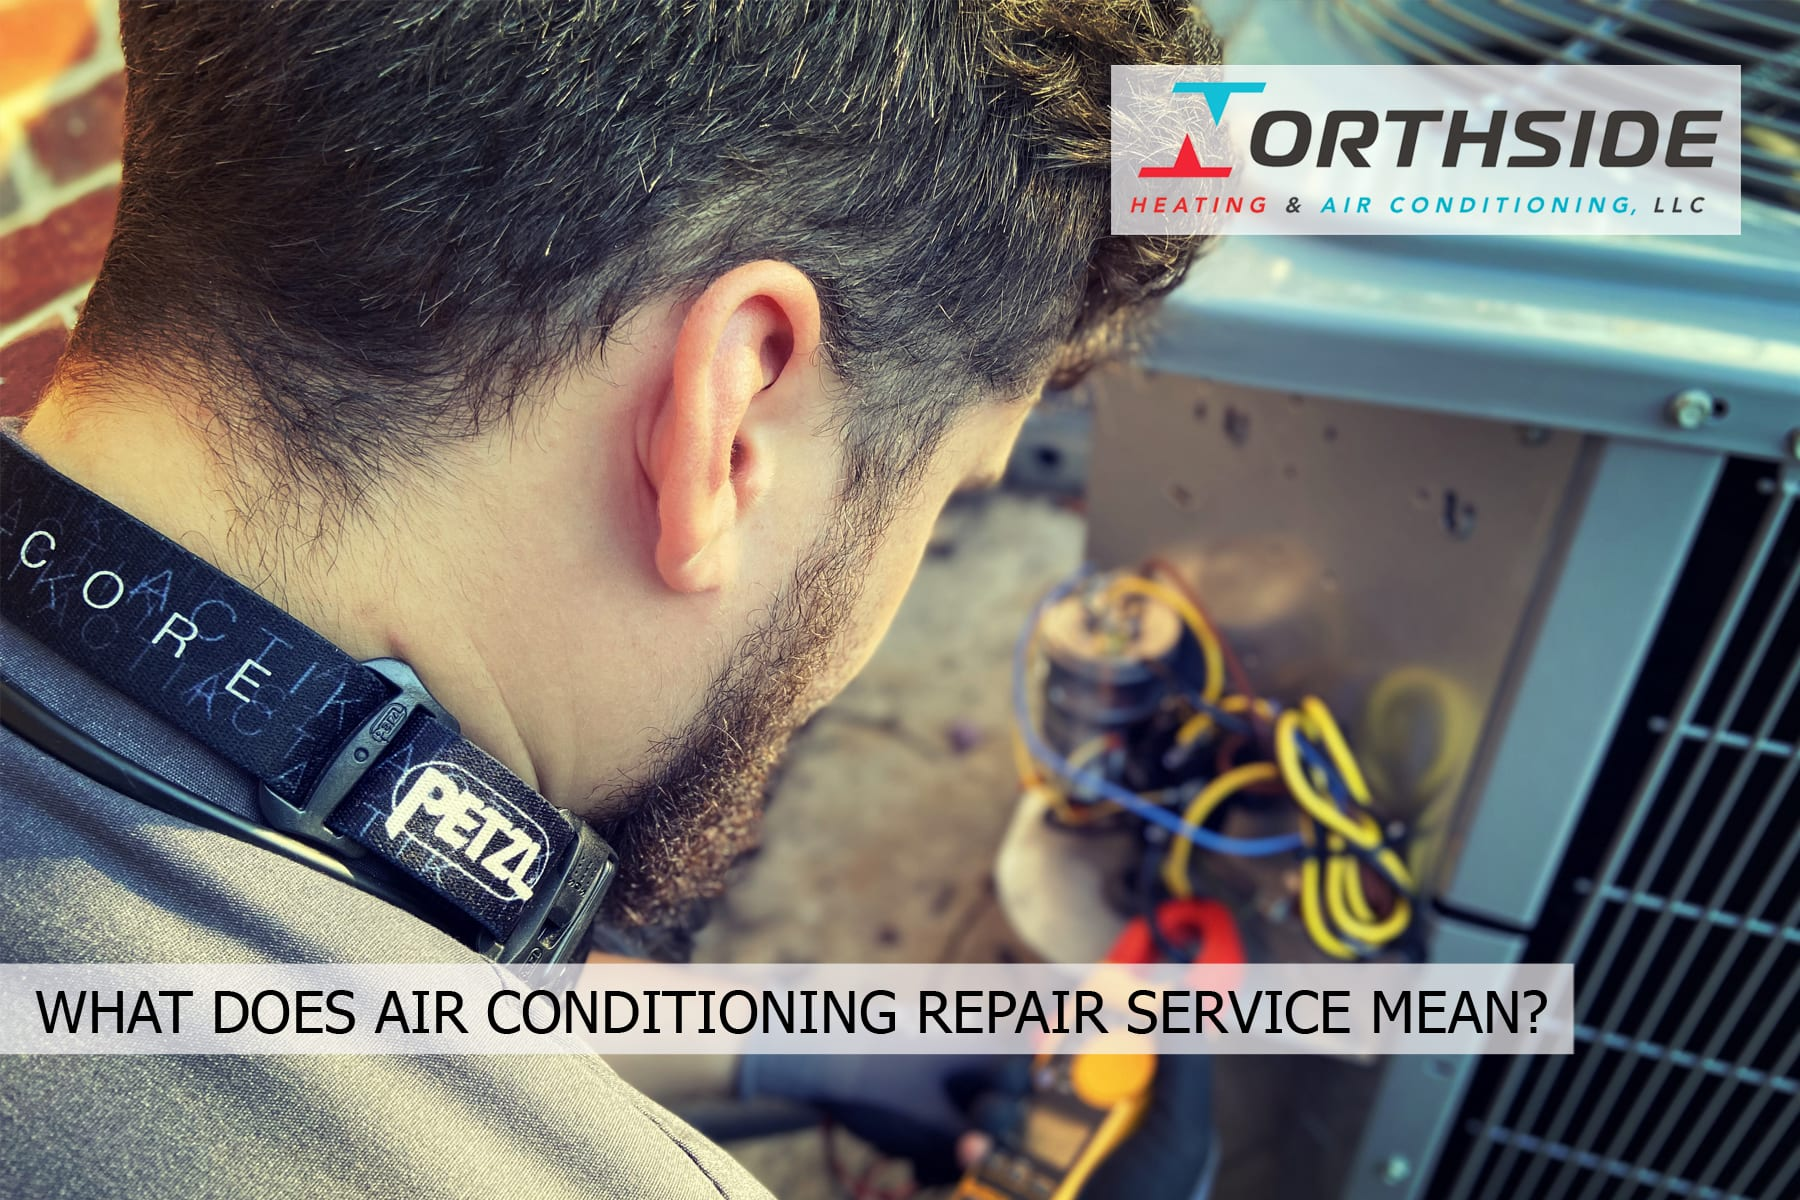 WHAT DOES AIR CONDITIONING REPAIR SERVICE MEAN?